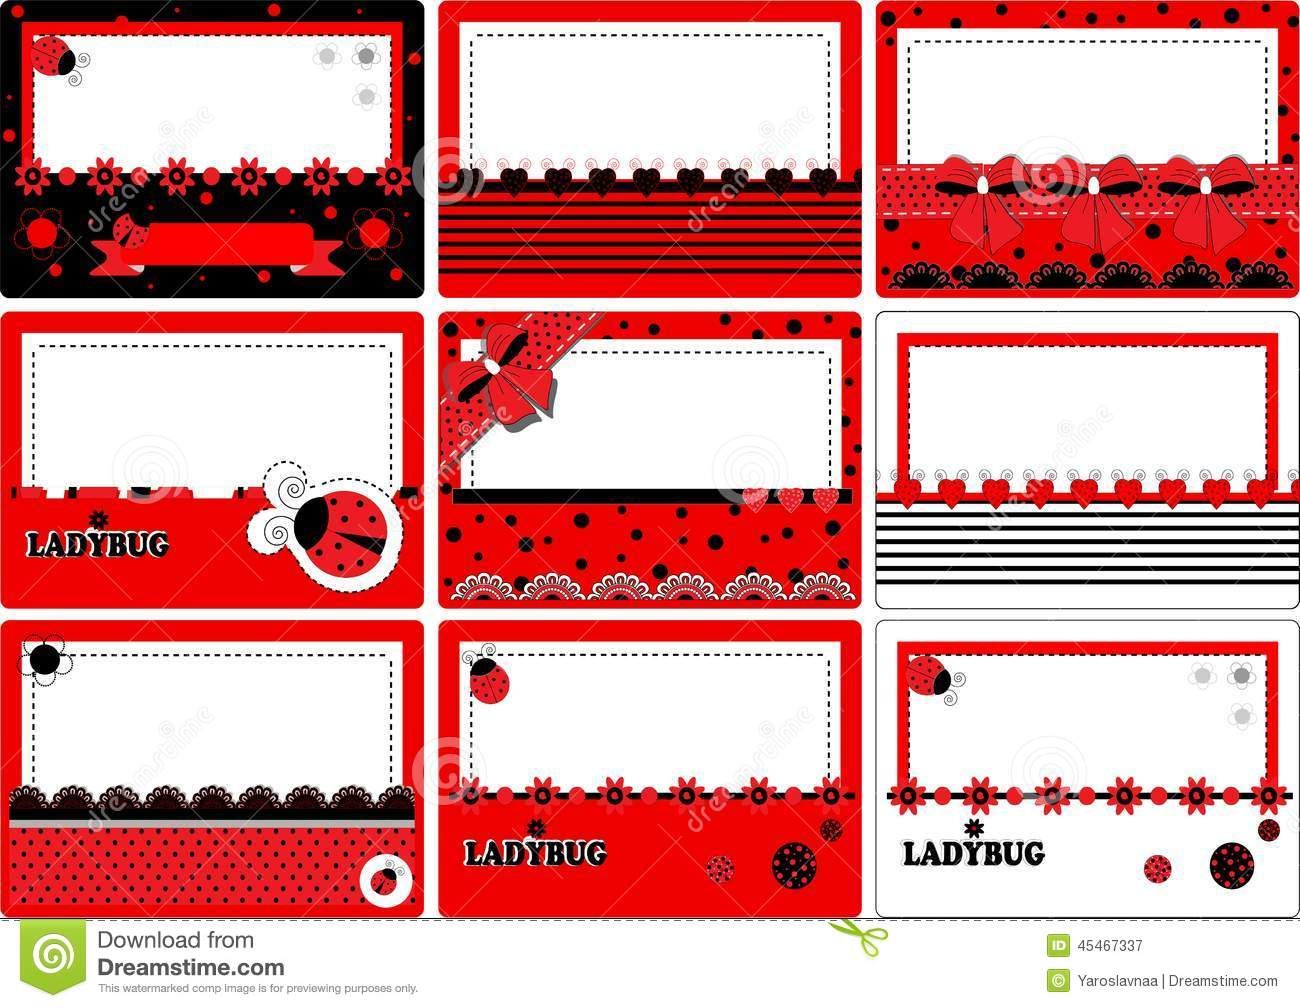 Cute Minnie Mouse Wallpaper Business Card Ladybug Stock Vector Image Of Girl Swatch